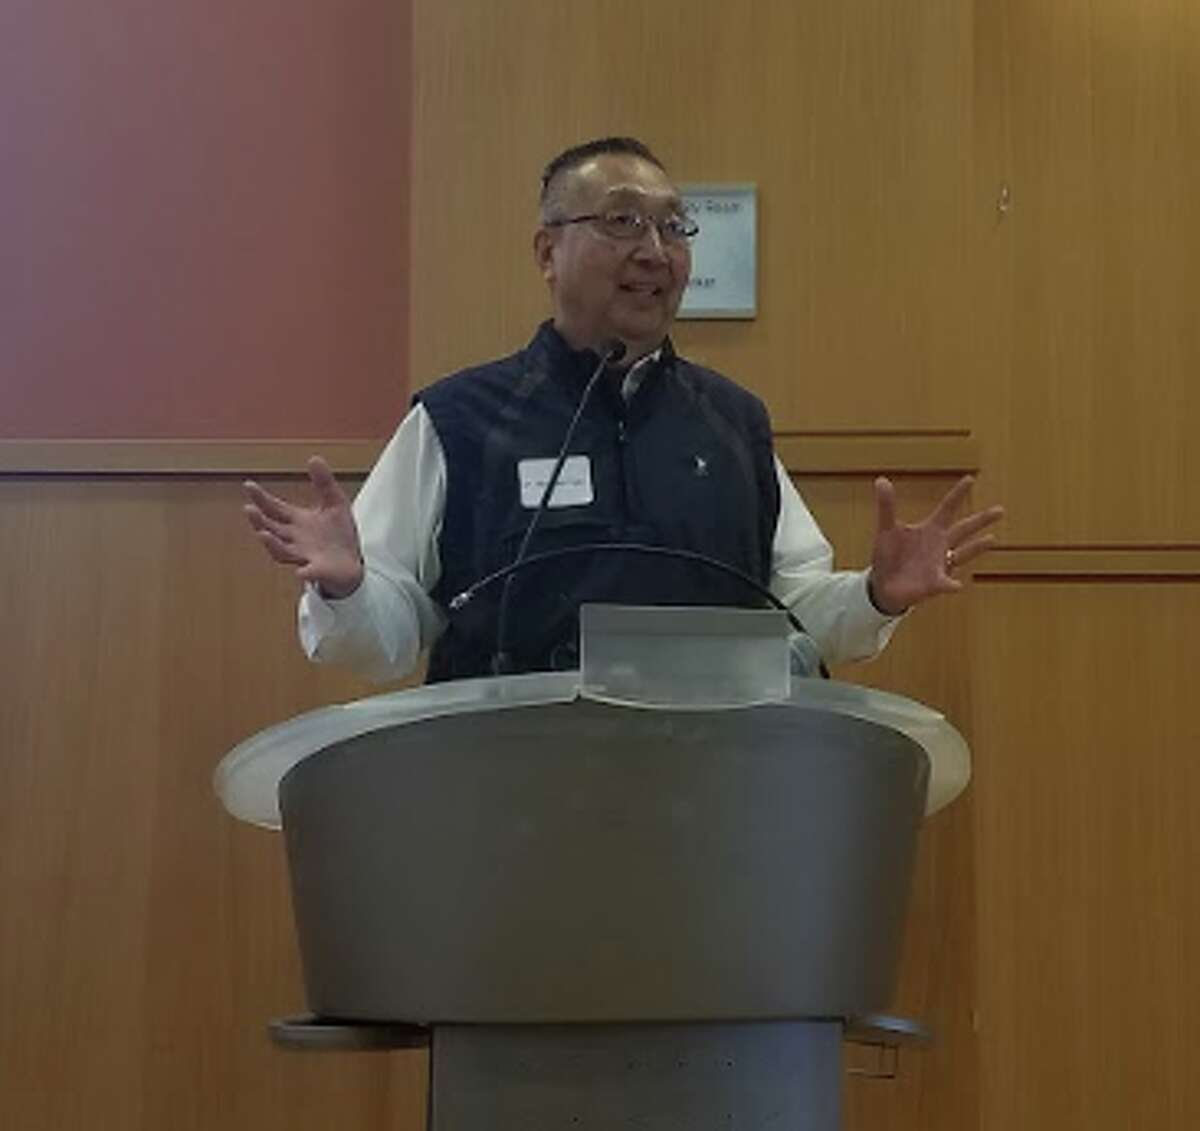 Dr. Michael Ego, University of Connecticut Professor of Human Development & Family Studies, came to the Darien Library on Dec. 6 to speak about misconceptions in aging. - Sandra Diamond Fox photo